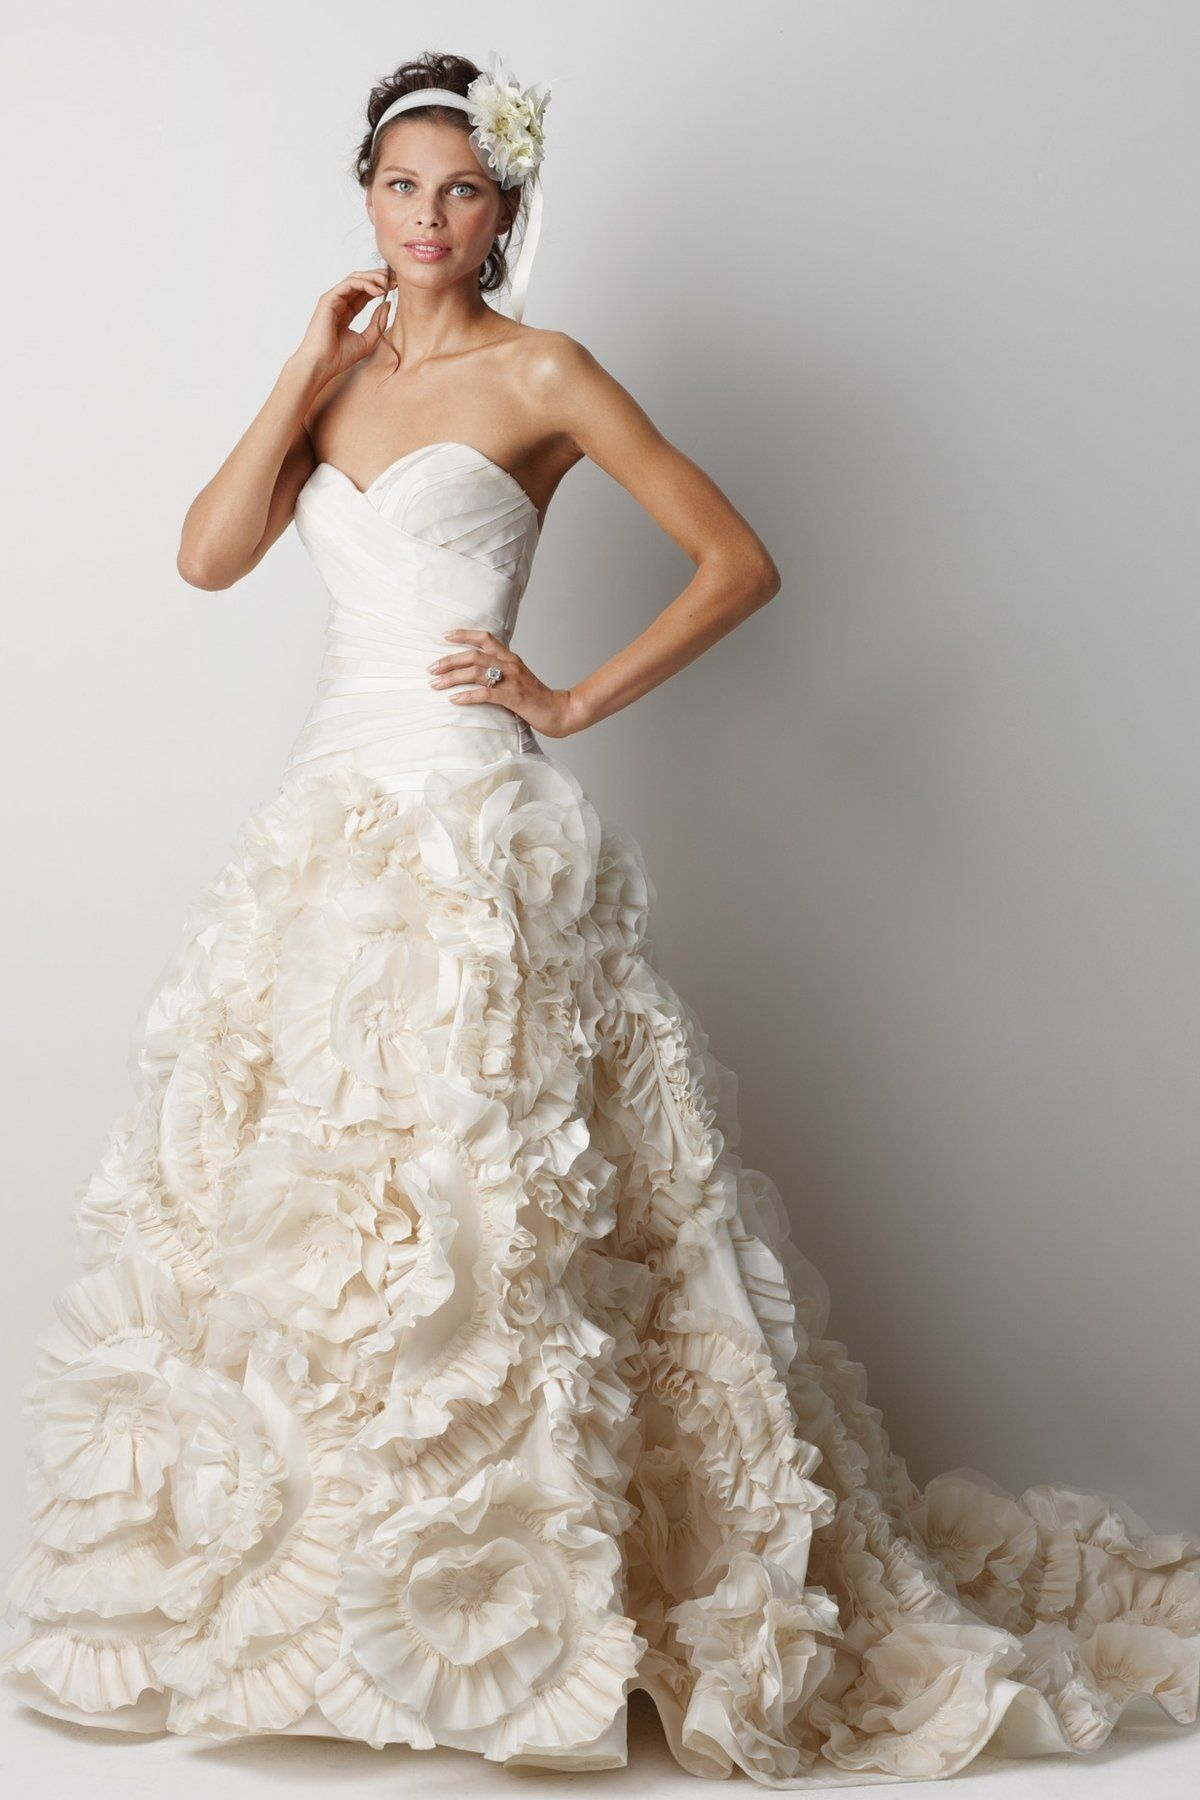 Mermaid wedding dresses with feather bottom  So pretty  My Future Wedding  Pinterest  Wedding Skirts and Gowns